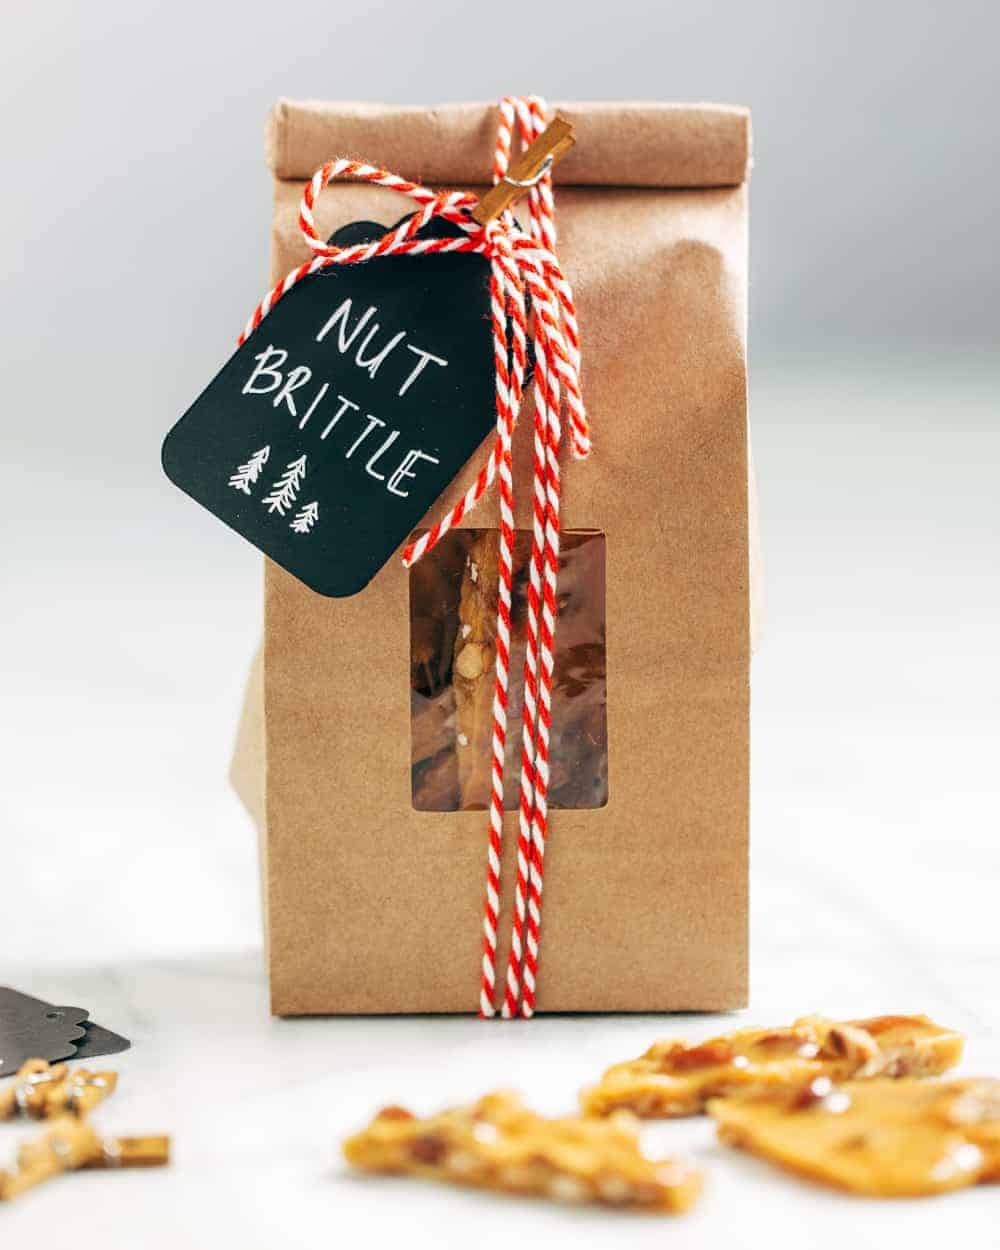 This Nut Brittle recipe uses salted mixed nuts for a delicious twist on the holiday classic. Package this candy up to give as a sweet holiday hostess gift.